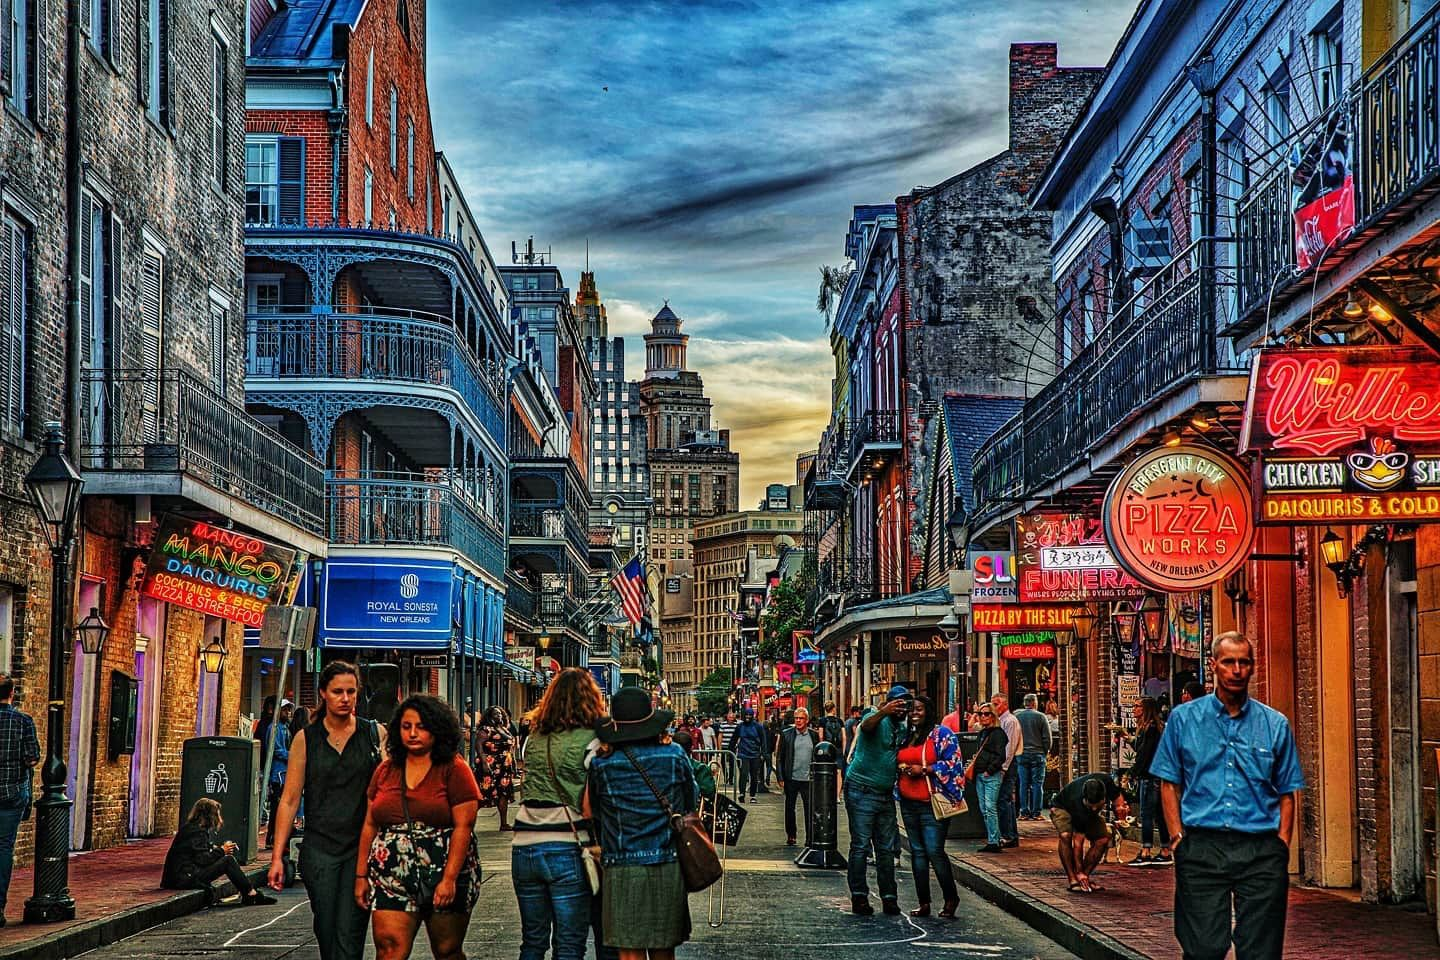 Lets visit one of the most musical cities in the world! 👉 MusicalGetaways.com now Discover the international language of music with our tours!   #TankAndTheBangas #TromboneShorty #cimafunk   #havanamusictours #neworleans #travel #culture #music #art #streetart #artists #musicians #musictours #specialholidays #musicalexperiences #Musicalgetaways #tours #gotravel #colorsofmusic